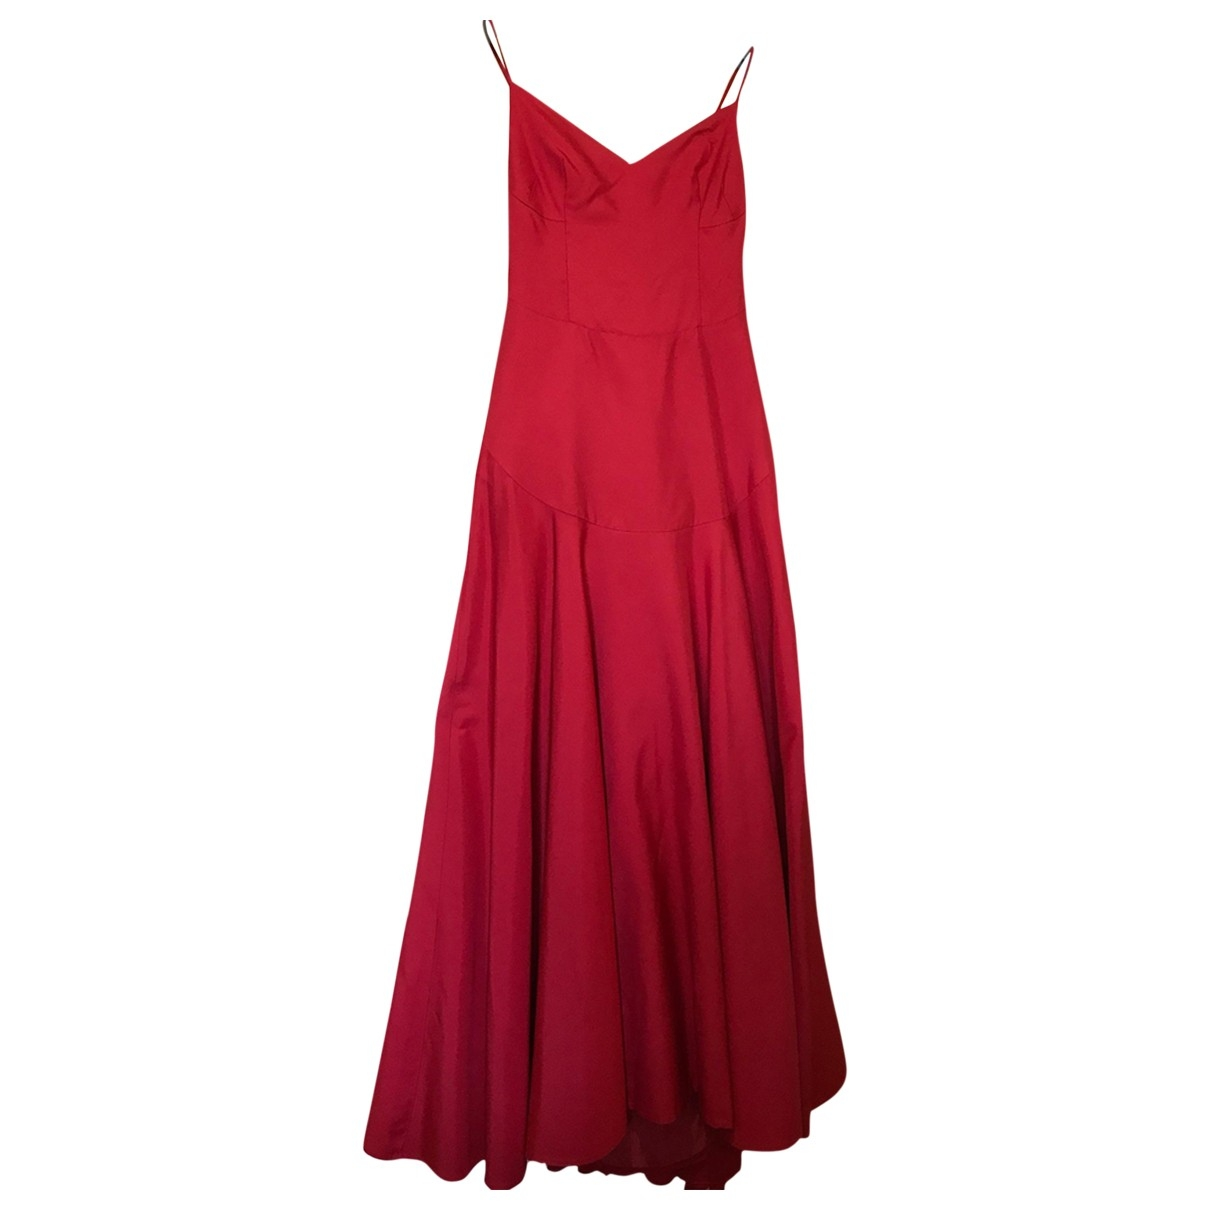 Moschino \N Red Silk dress for Women 38 FR